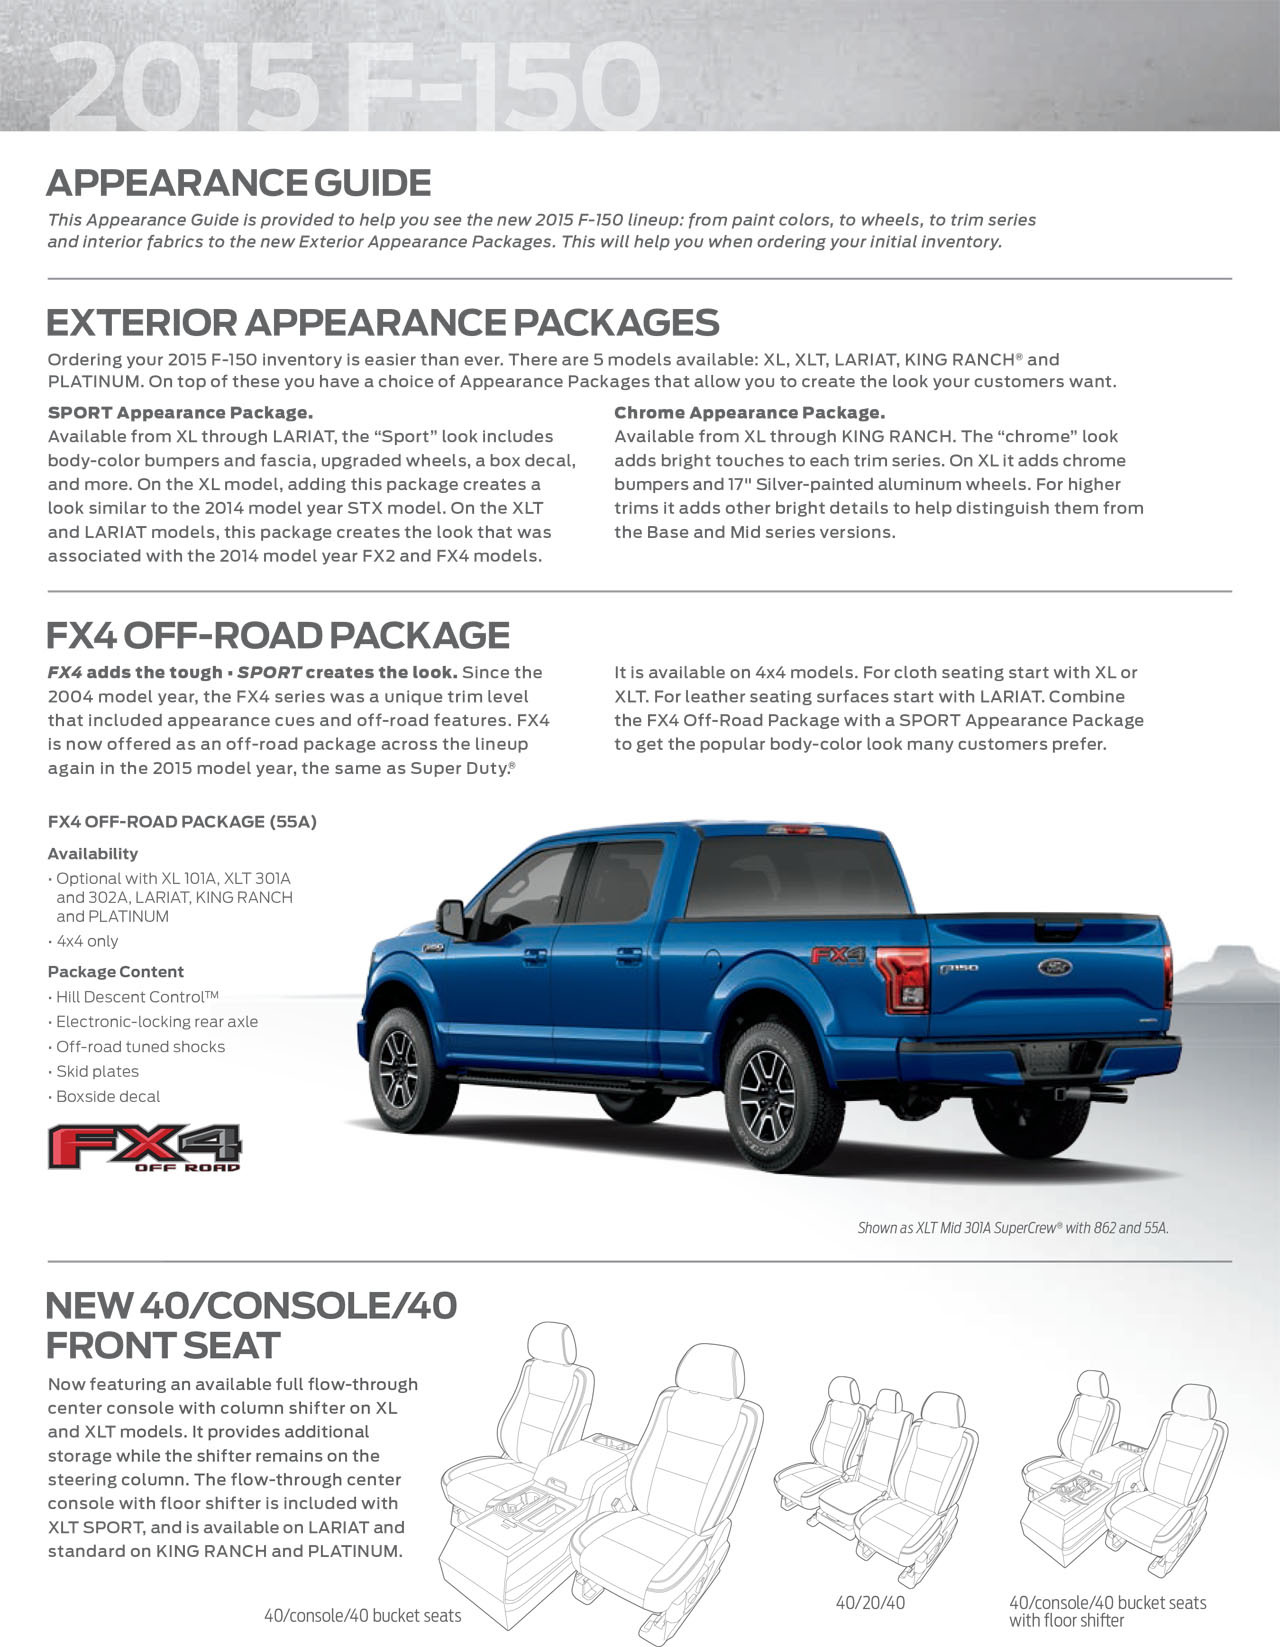 ... 2015 Ford F-150 appearance guide ...